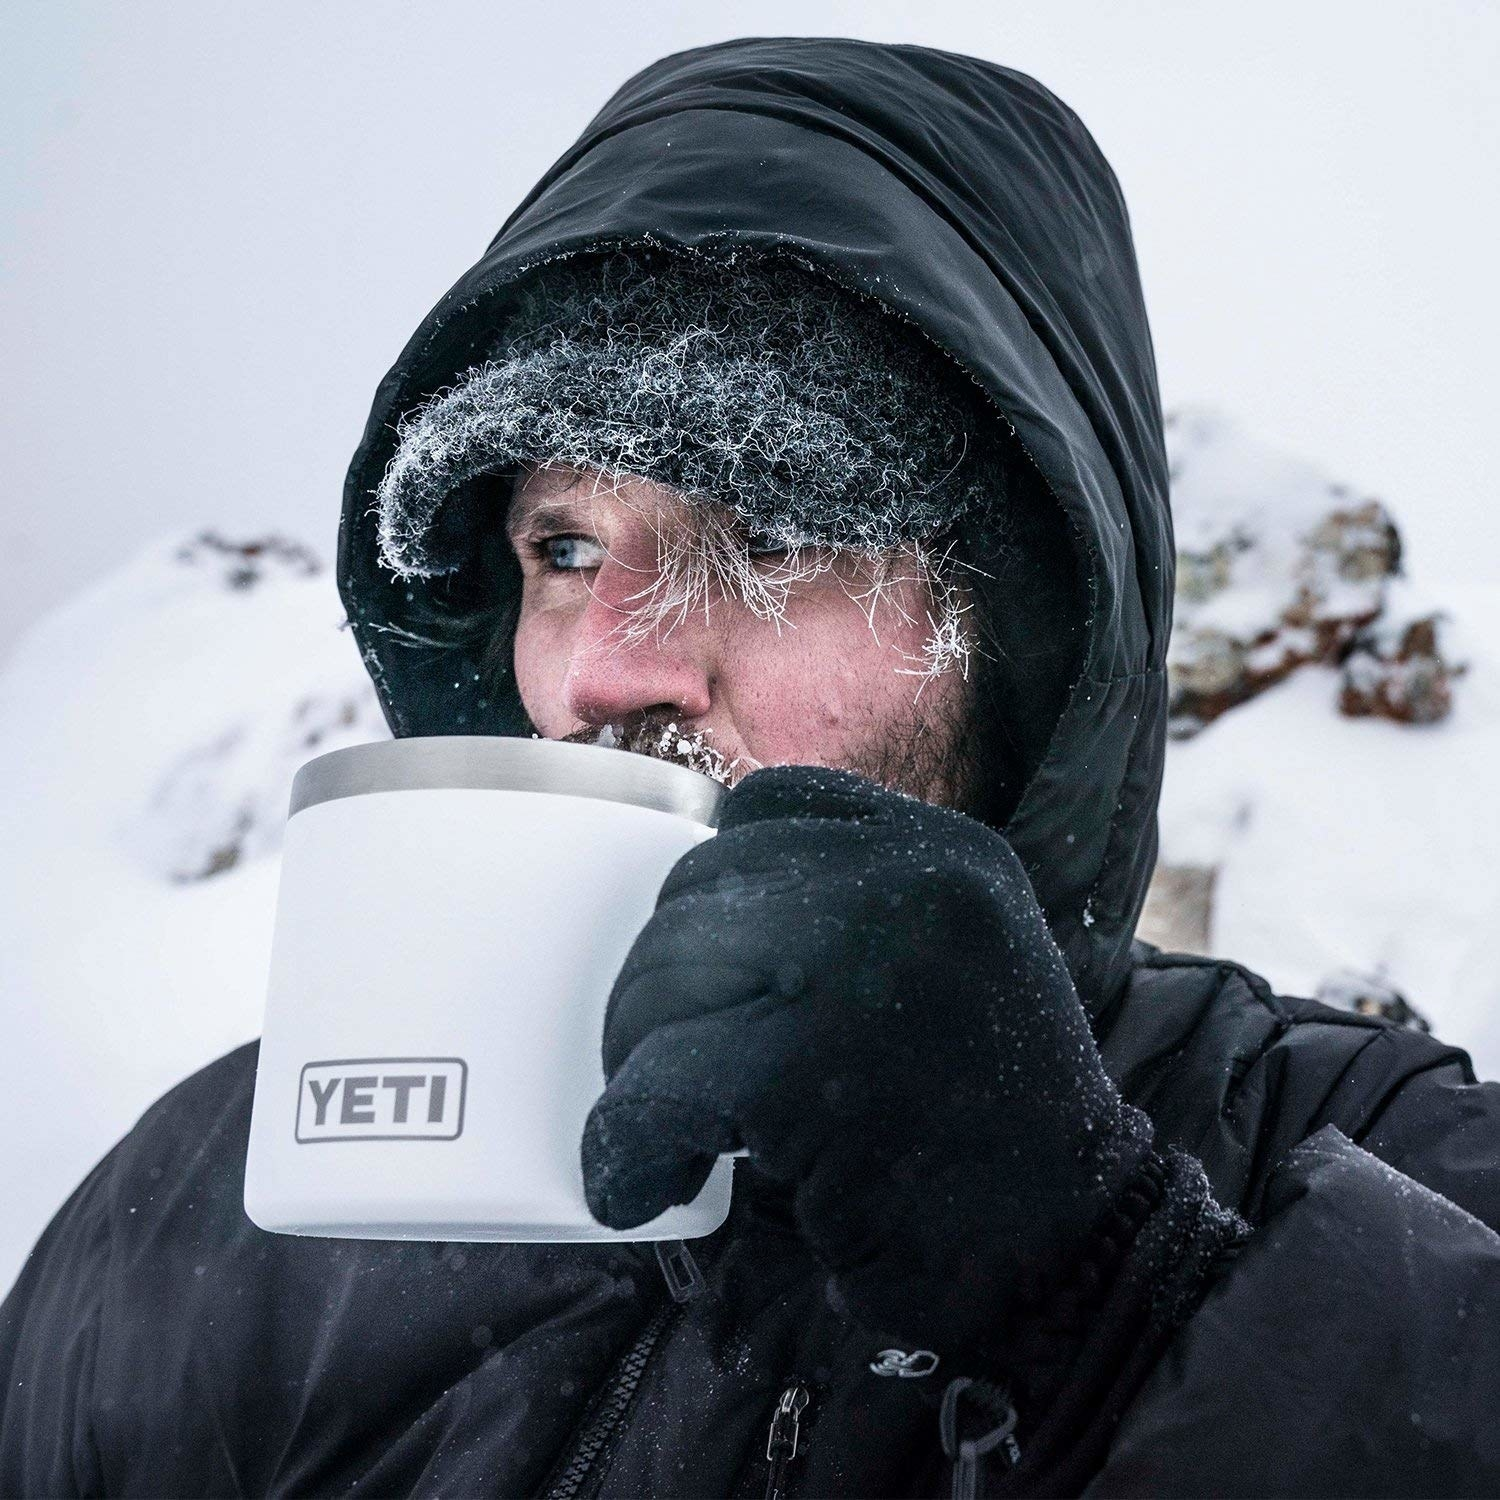 A man in the snowy outdoors is in a parka dusted with snow and drinking from a white Yeti mug.